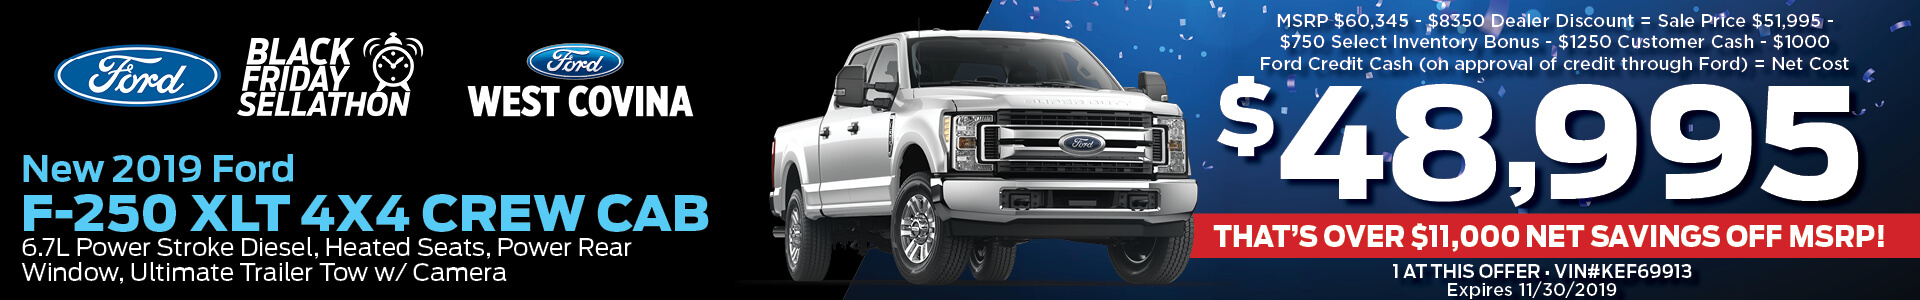 Ford F-250 $48995 Purchase